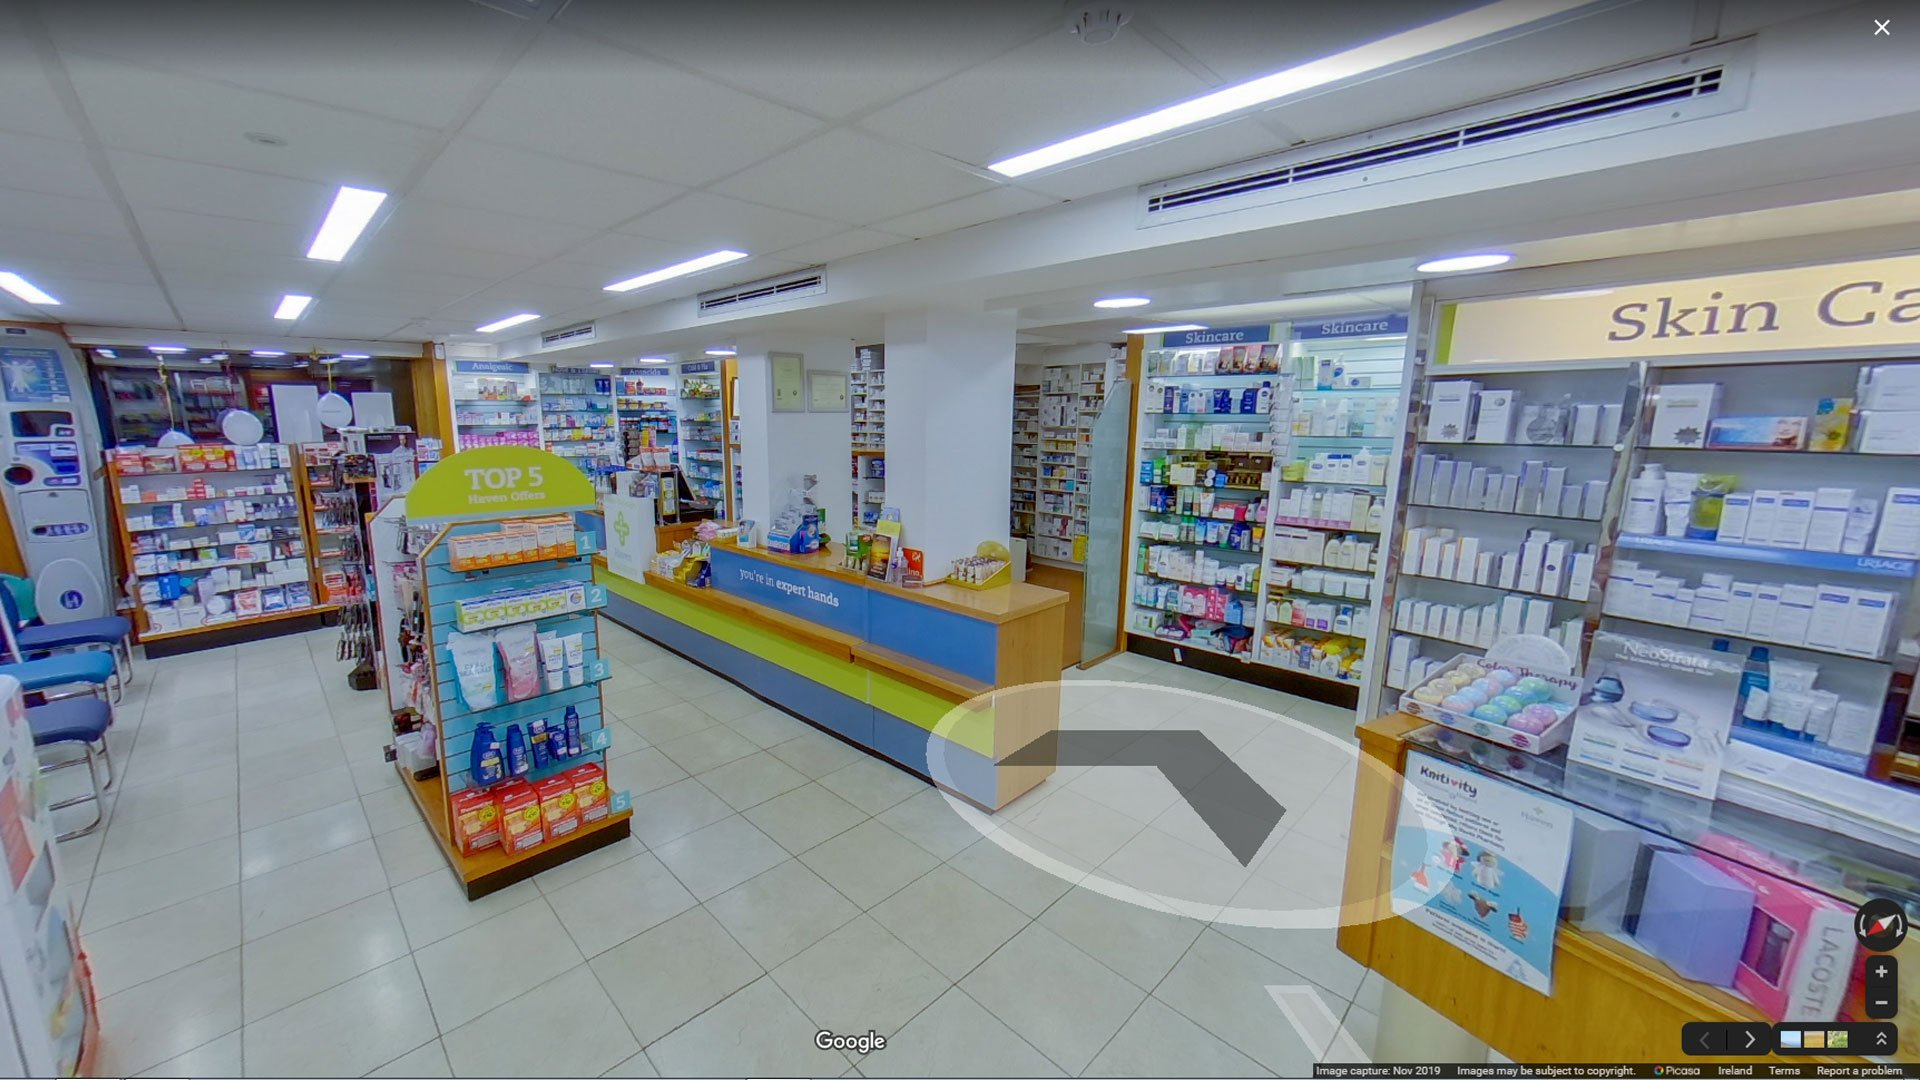 360 Virtual Tour of the Kavanagh Pharmacy in Enniscorthy